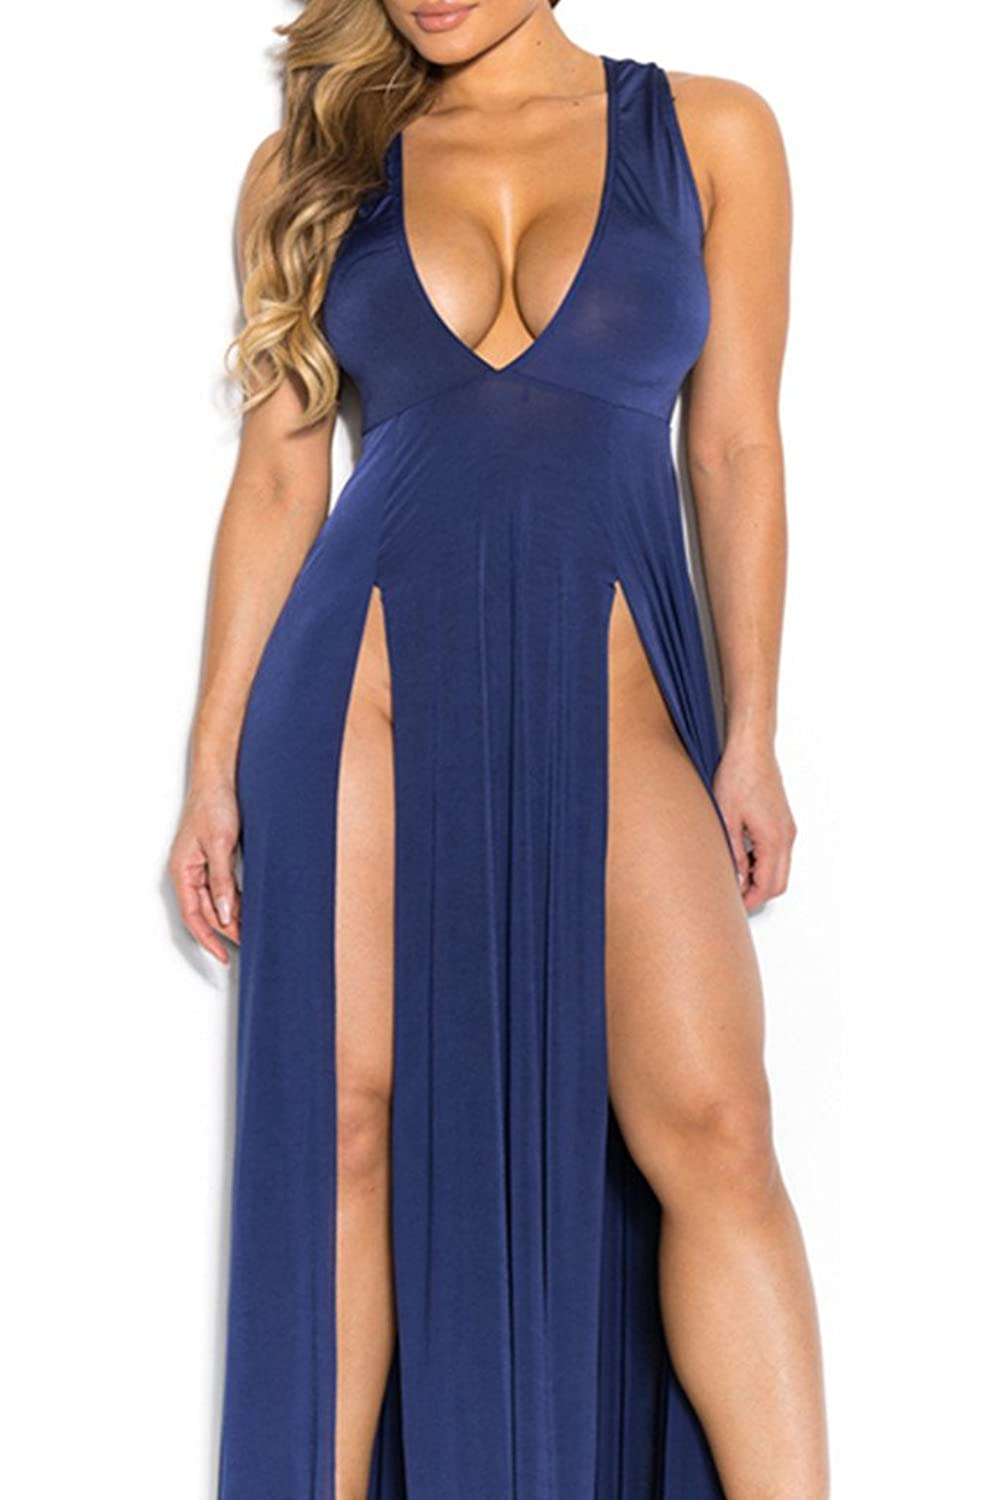 VIVOSKY Women's Sexy V Neck Side Split Club Dress Bandage Bodycon Party Dress